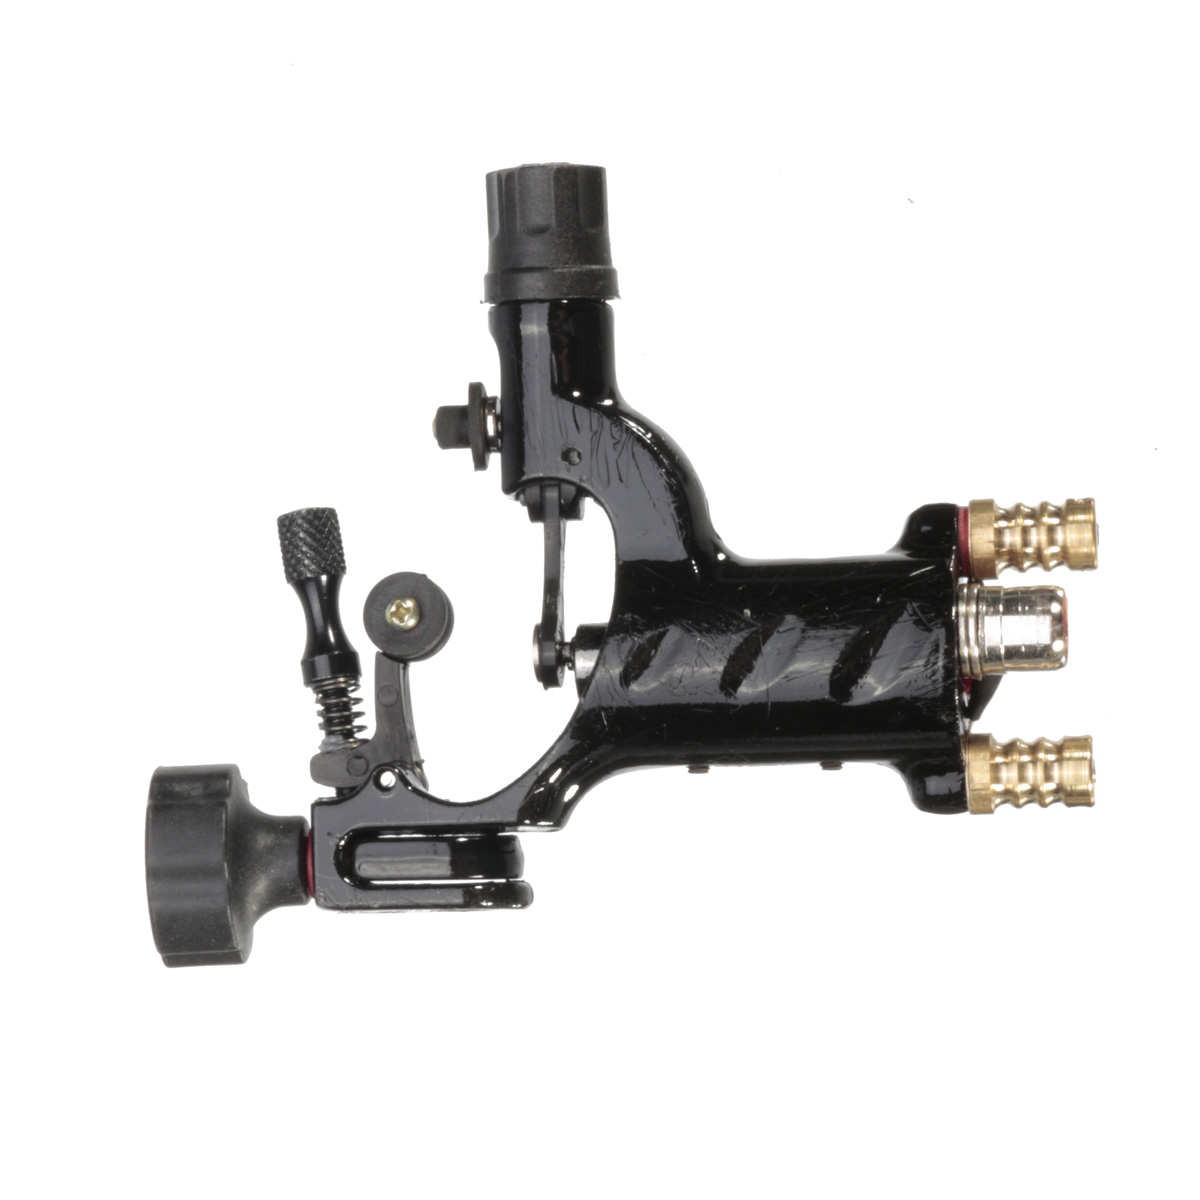 Black Silent Rotary Motor Tattoo Dragonfly Machine Gun For